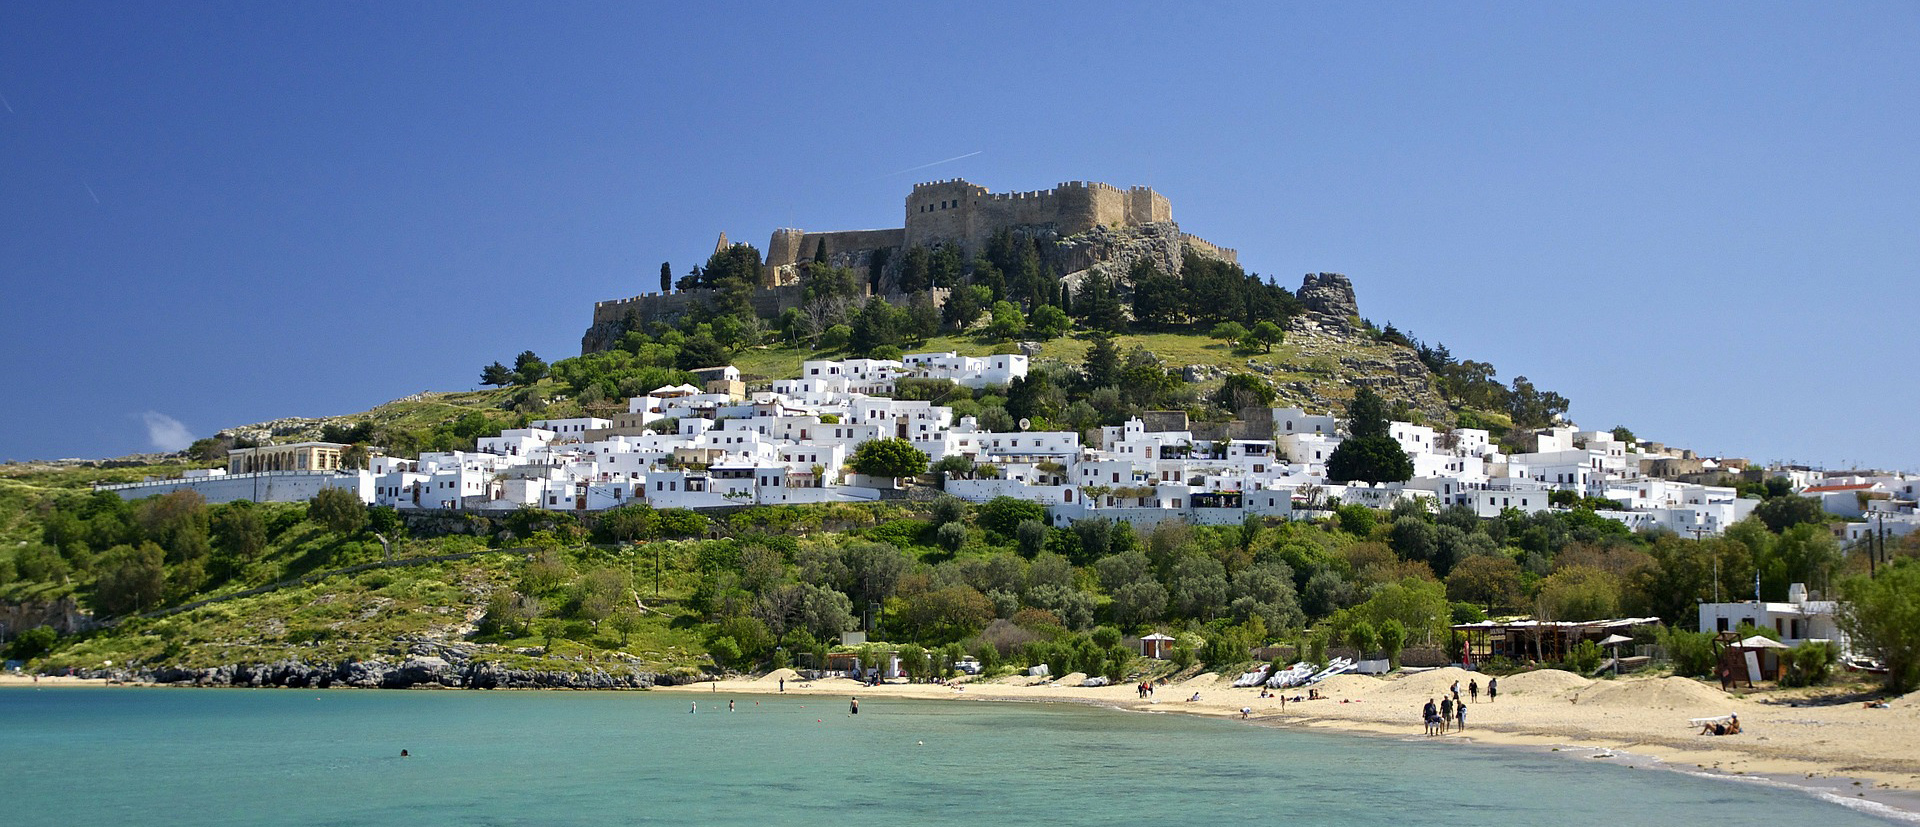 Antique treasures, Aegean-coast and Olive groves: Now with easyJet to Rhodes